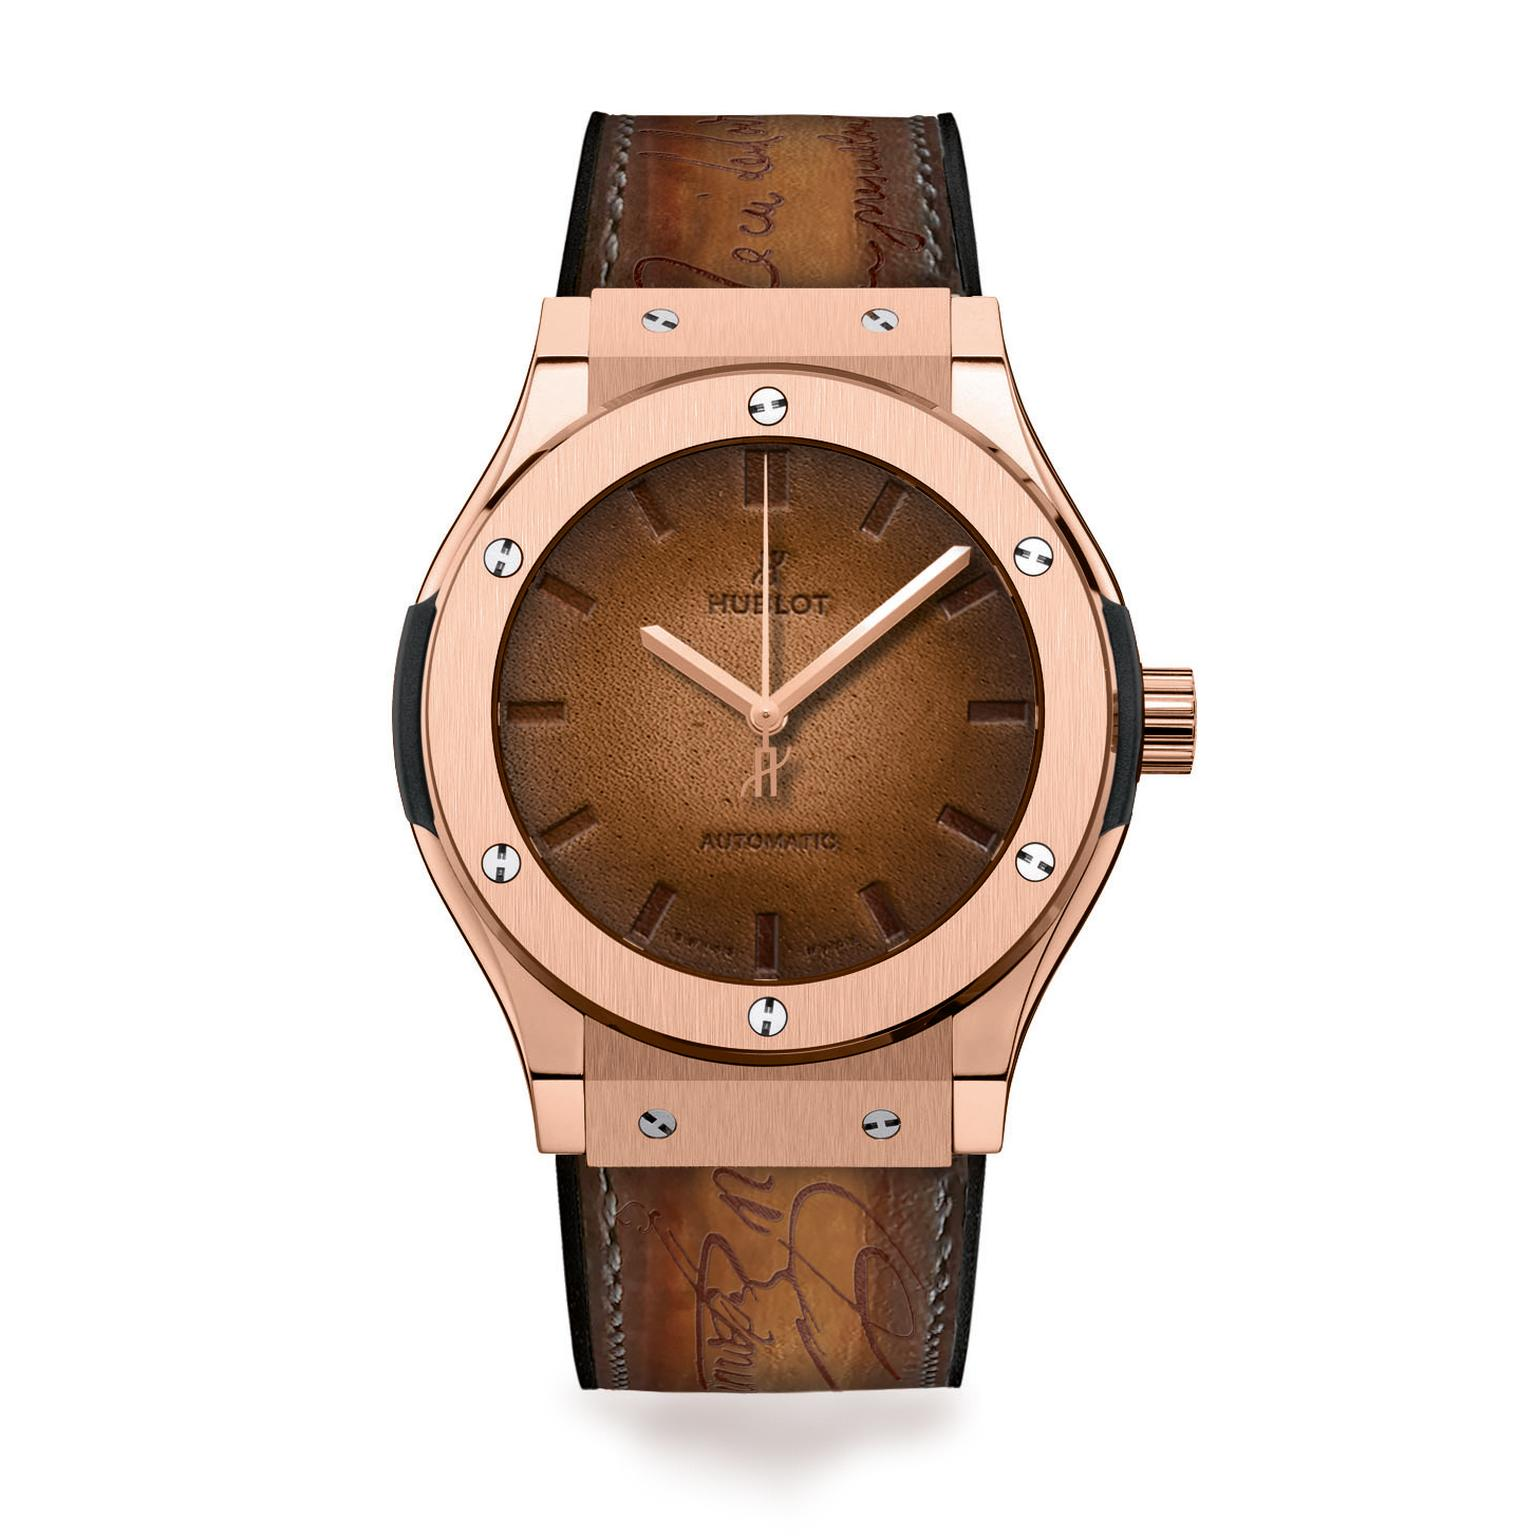 Hublot Classic Fusion watch with Berluti brown leather strap